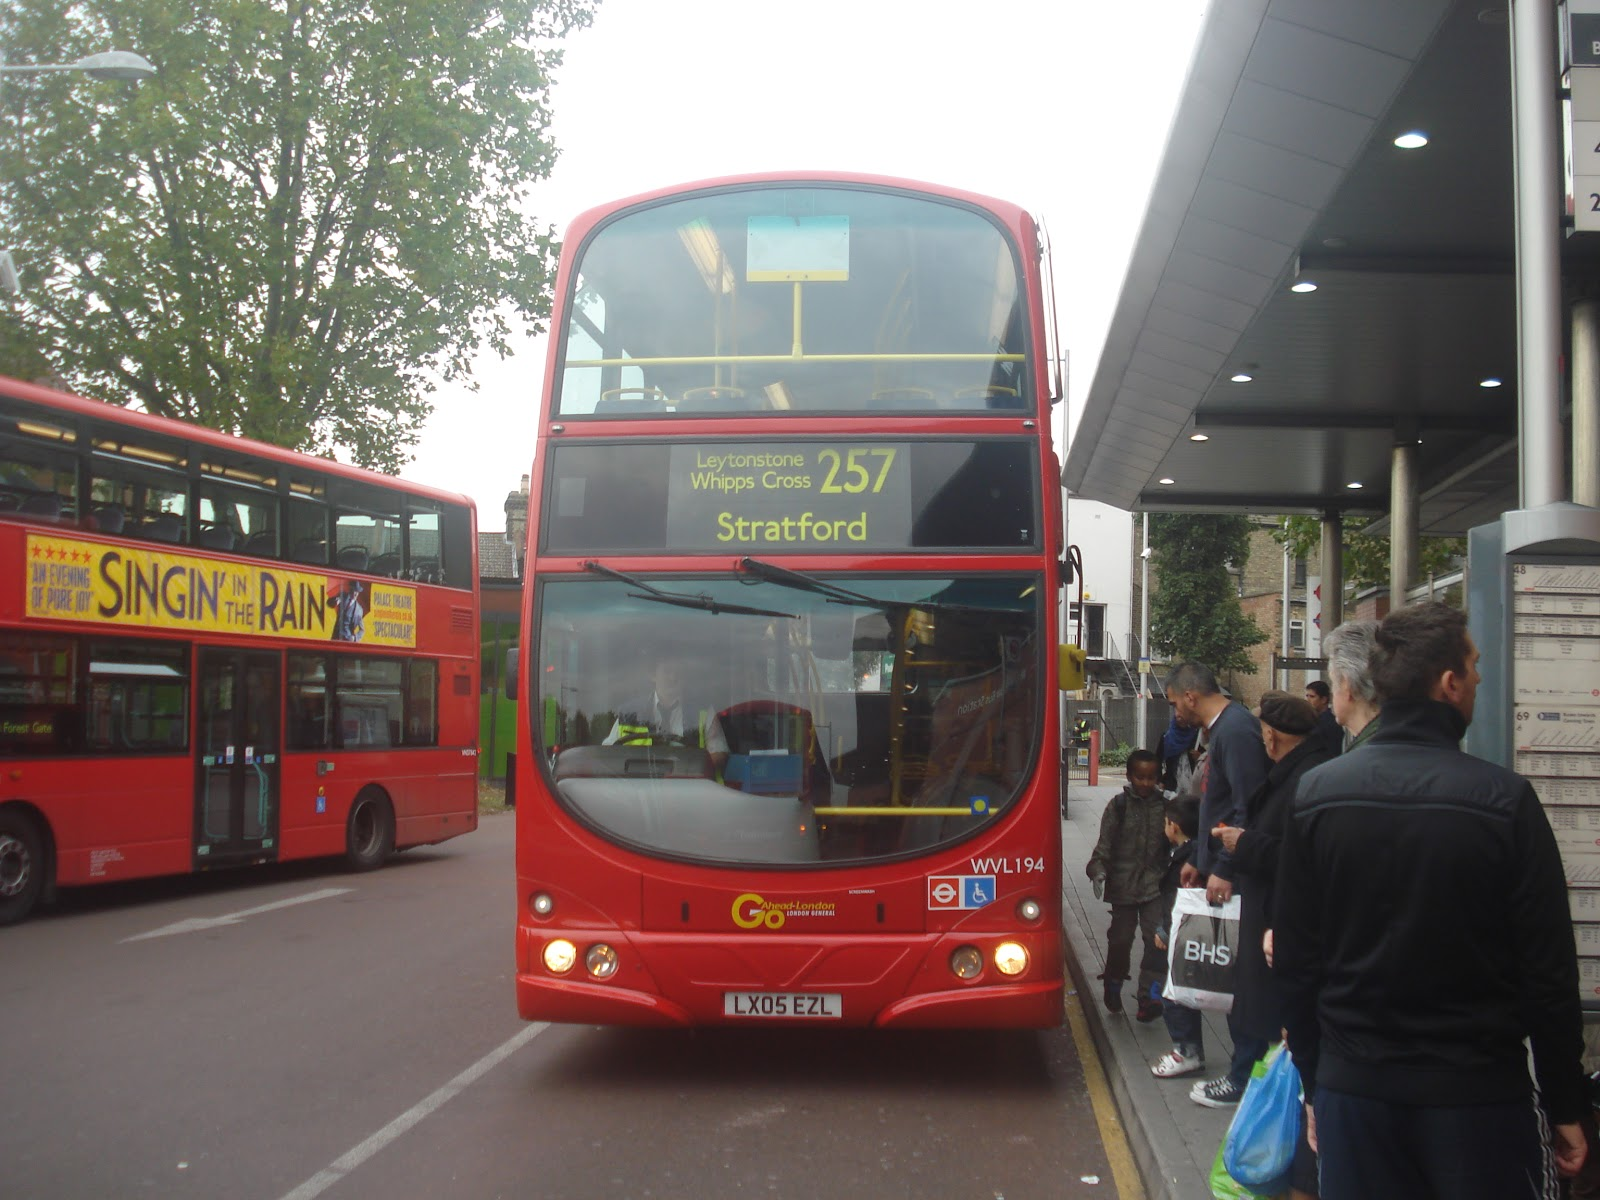 Wltm Transport Blog Routes 257 And 22 20 10 12